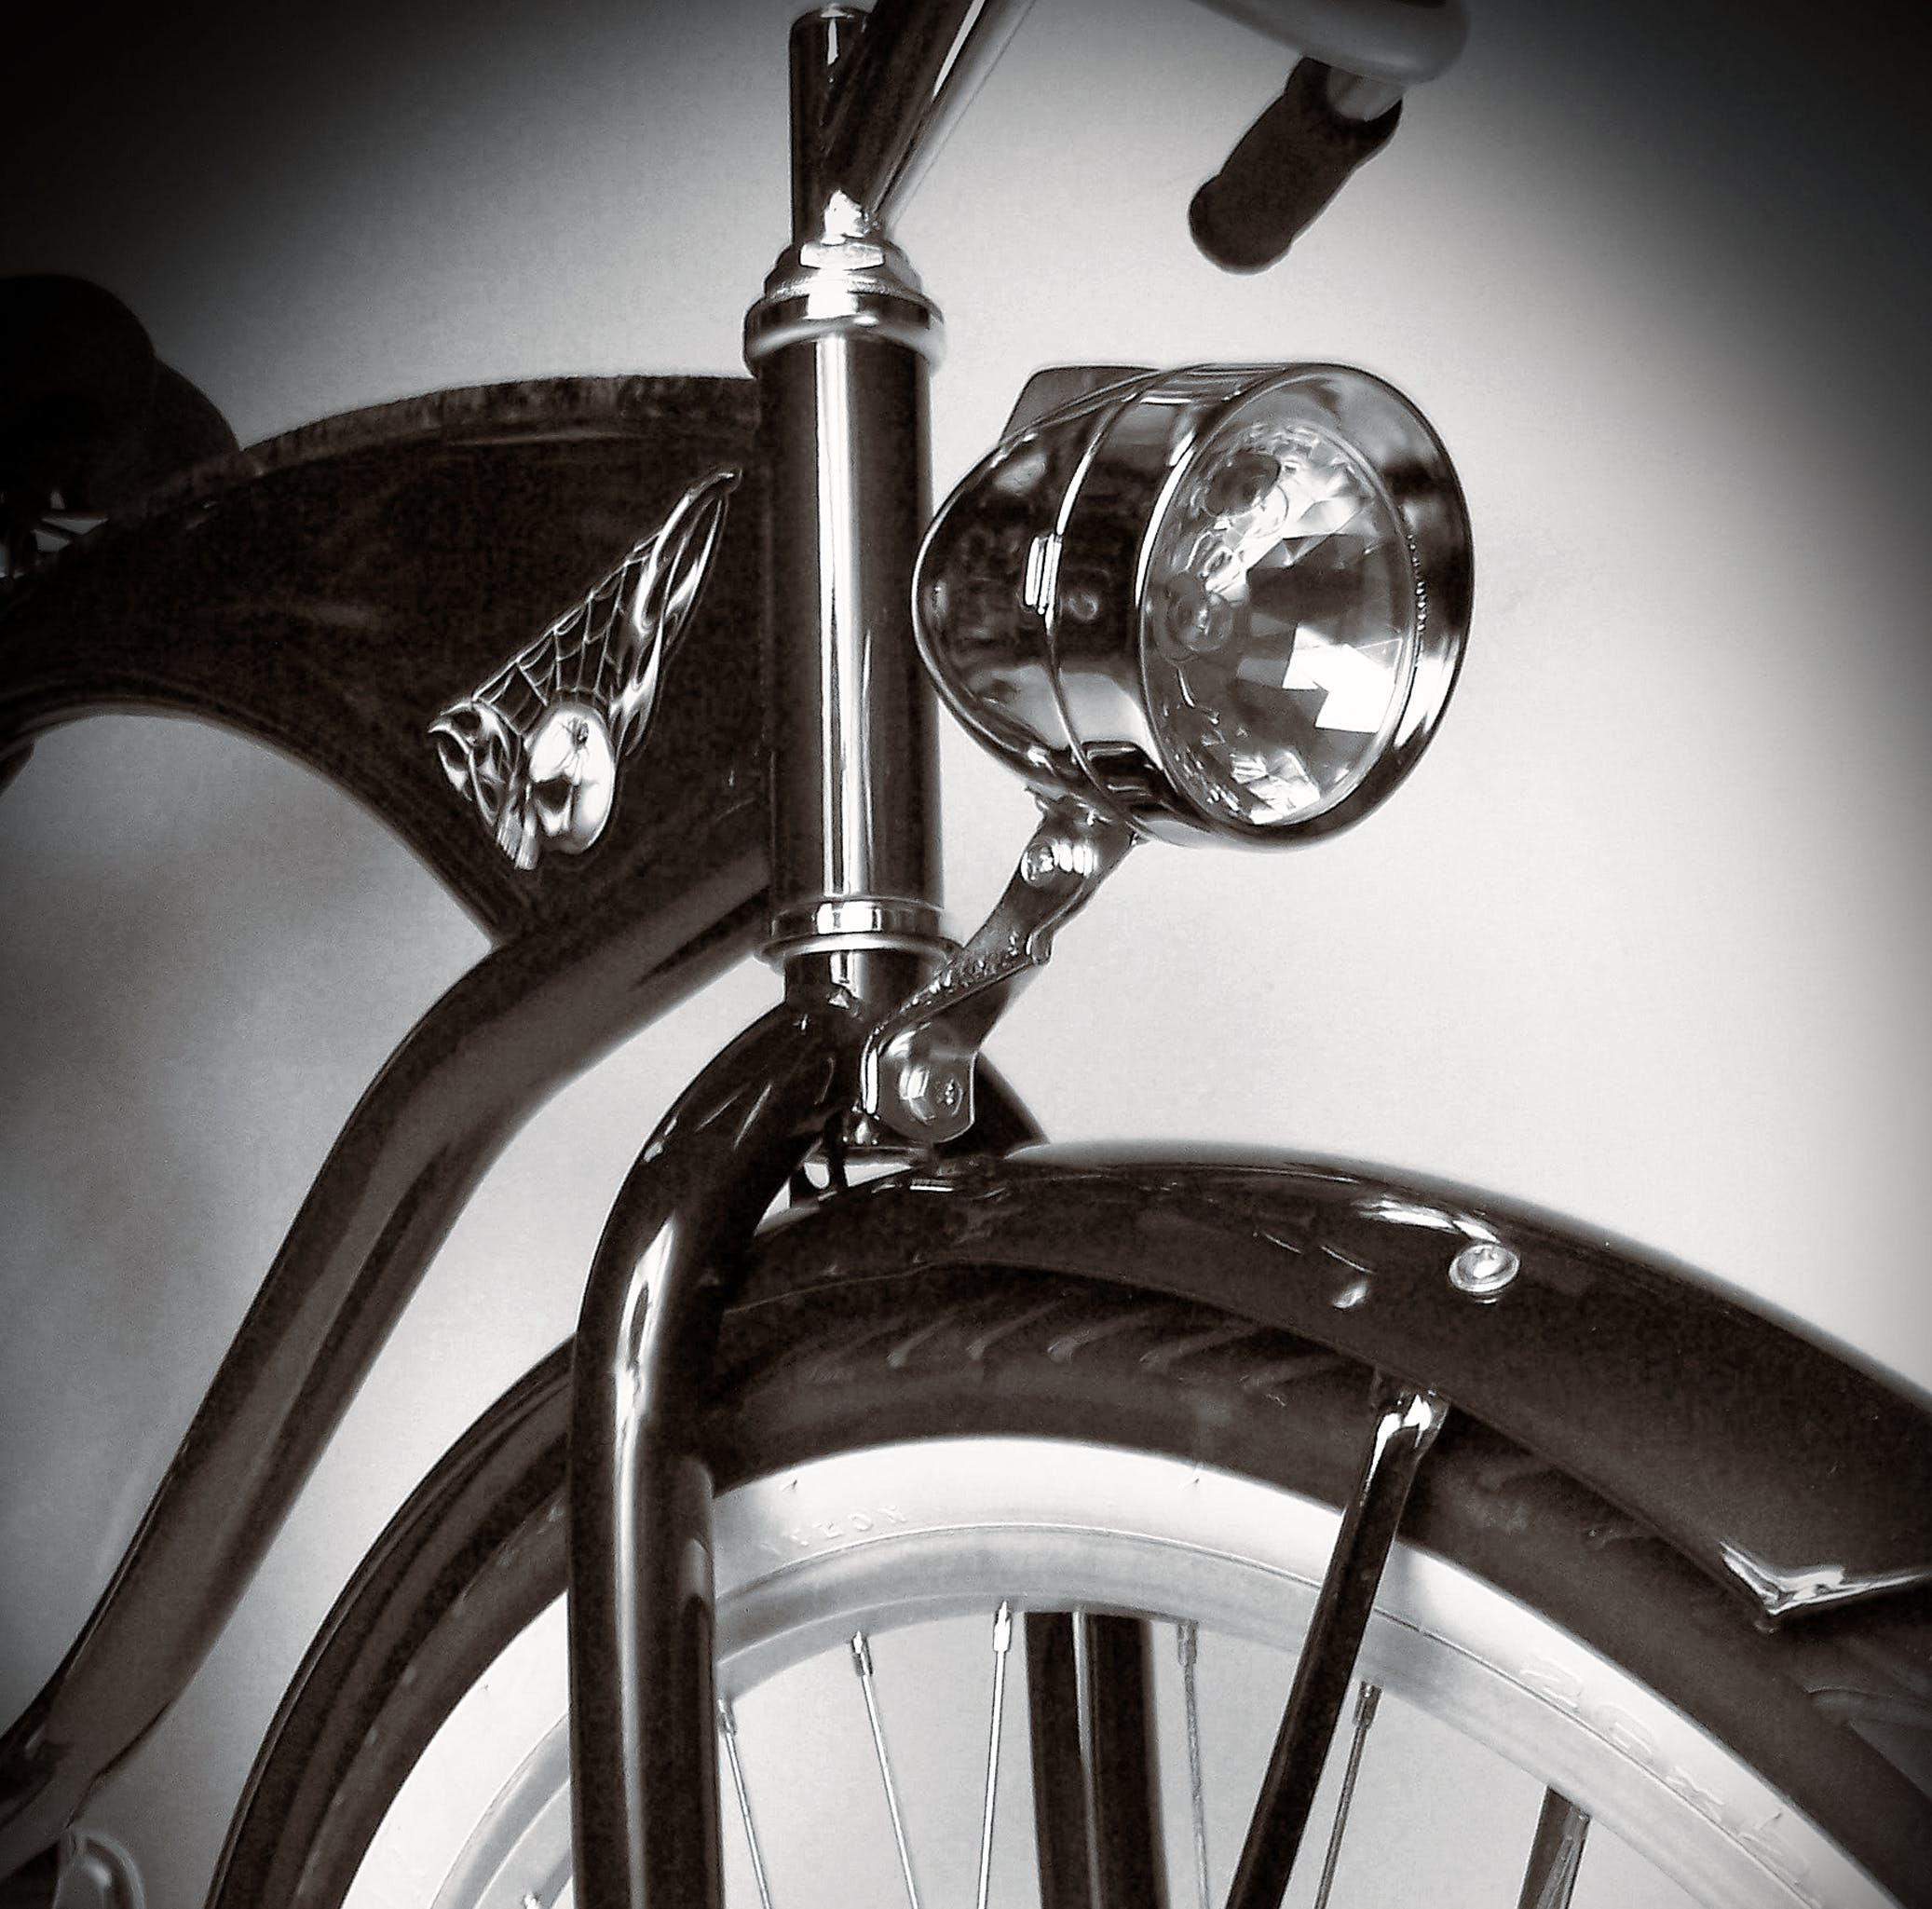 Free stock photo of Bicycle Cruiser